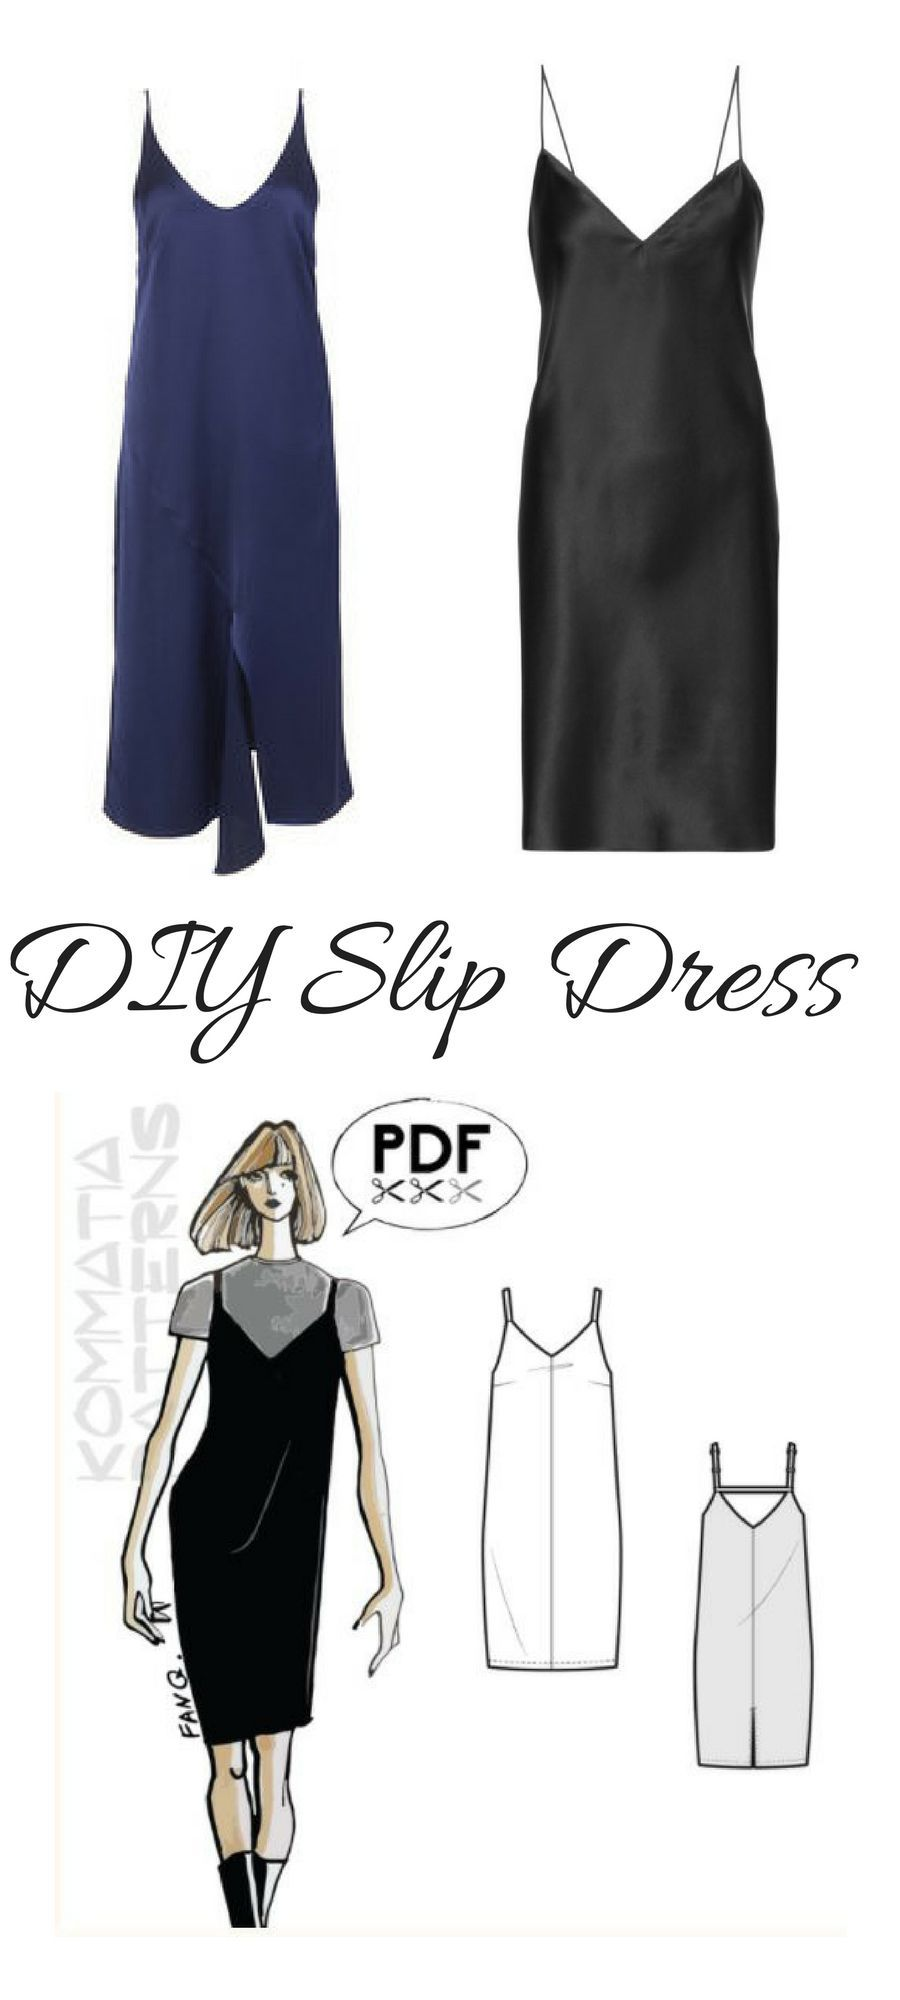 Elegant Picture of Diy Clothes Sewing Easy - figswoodfiredbistro.com -  Elegant Picture of Diy Clothes Sewing Easy Diy Clothes Sewing Easy Slip Dresses Are So Cool And Eas - #ariana #bestforwomen #clothes #DIY #diyclothesforwomen #Easy #Elegant #figswoodfiredbistrocom #PICTURE #plussizedresses #Sewing #weightforwomen #womenglasses #womensfashionplussize #womensheels #womensstyle #workoutsforwomen